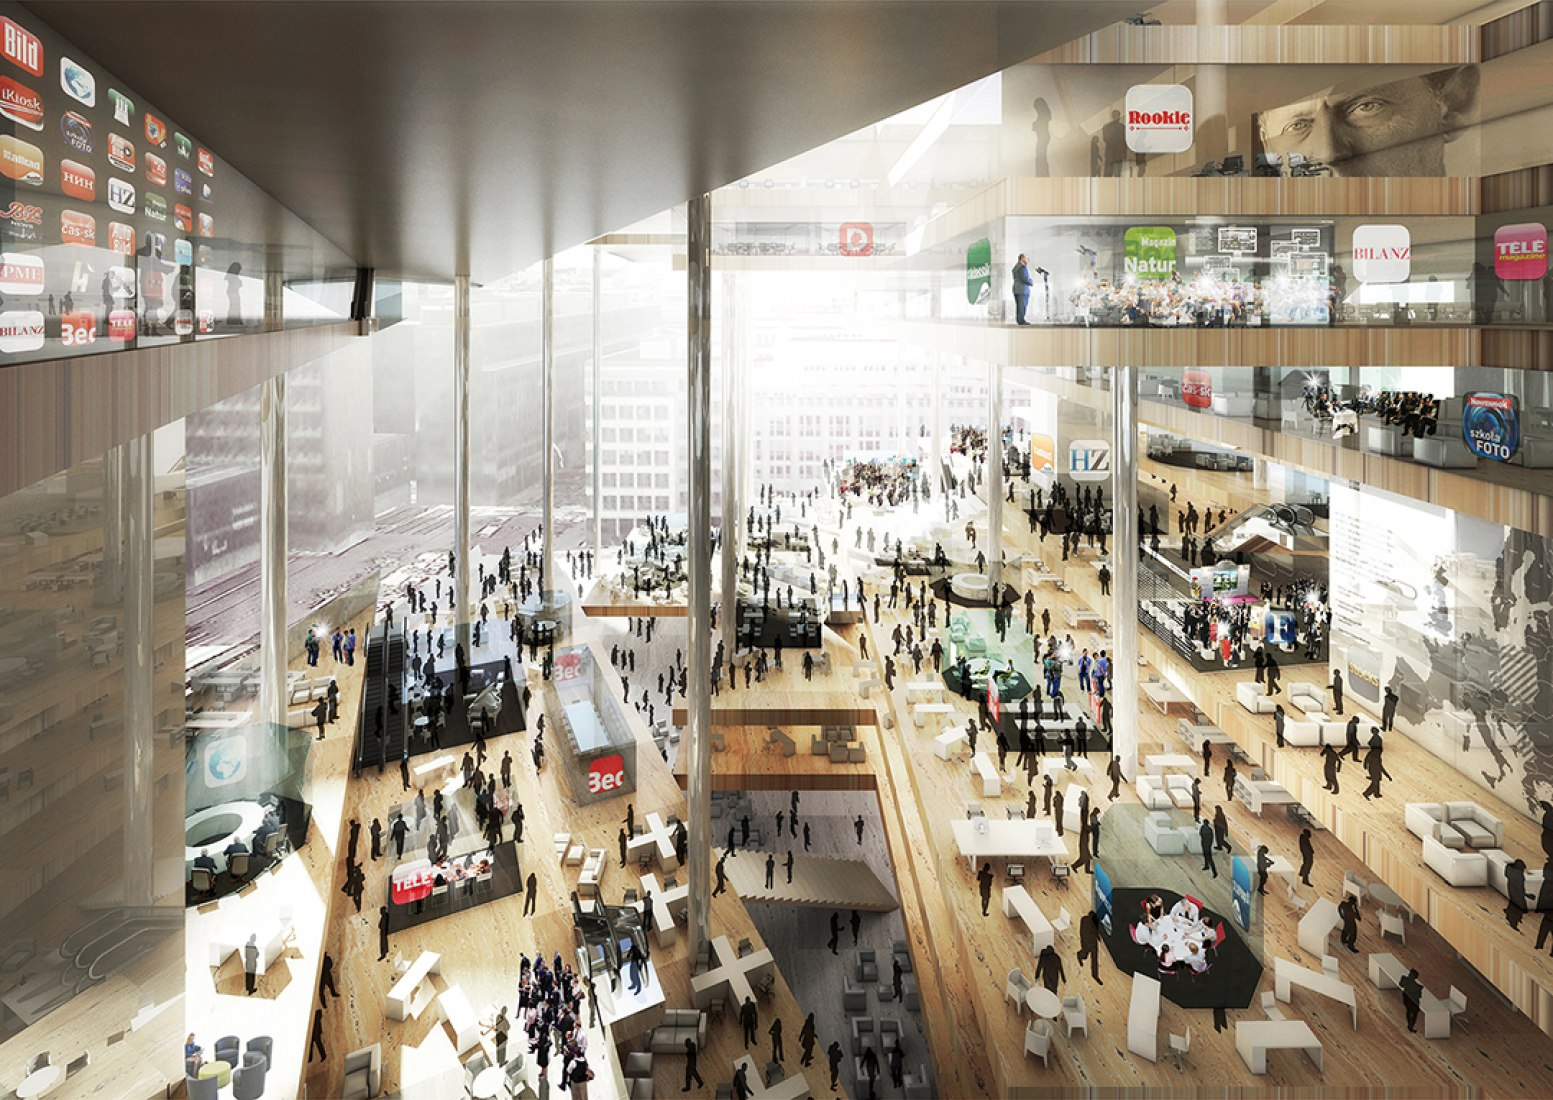 OMA's proposal for the new Axel Springer Media Center. Image courtesy OMA.